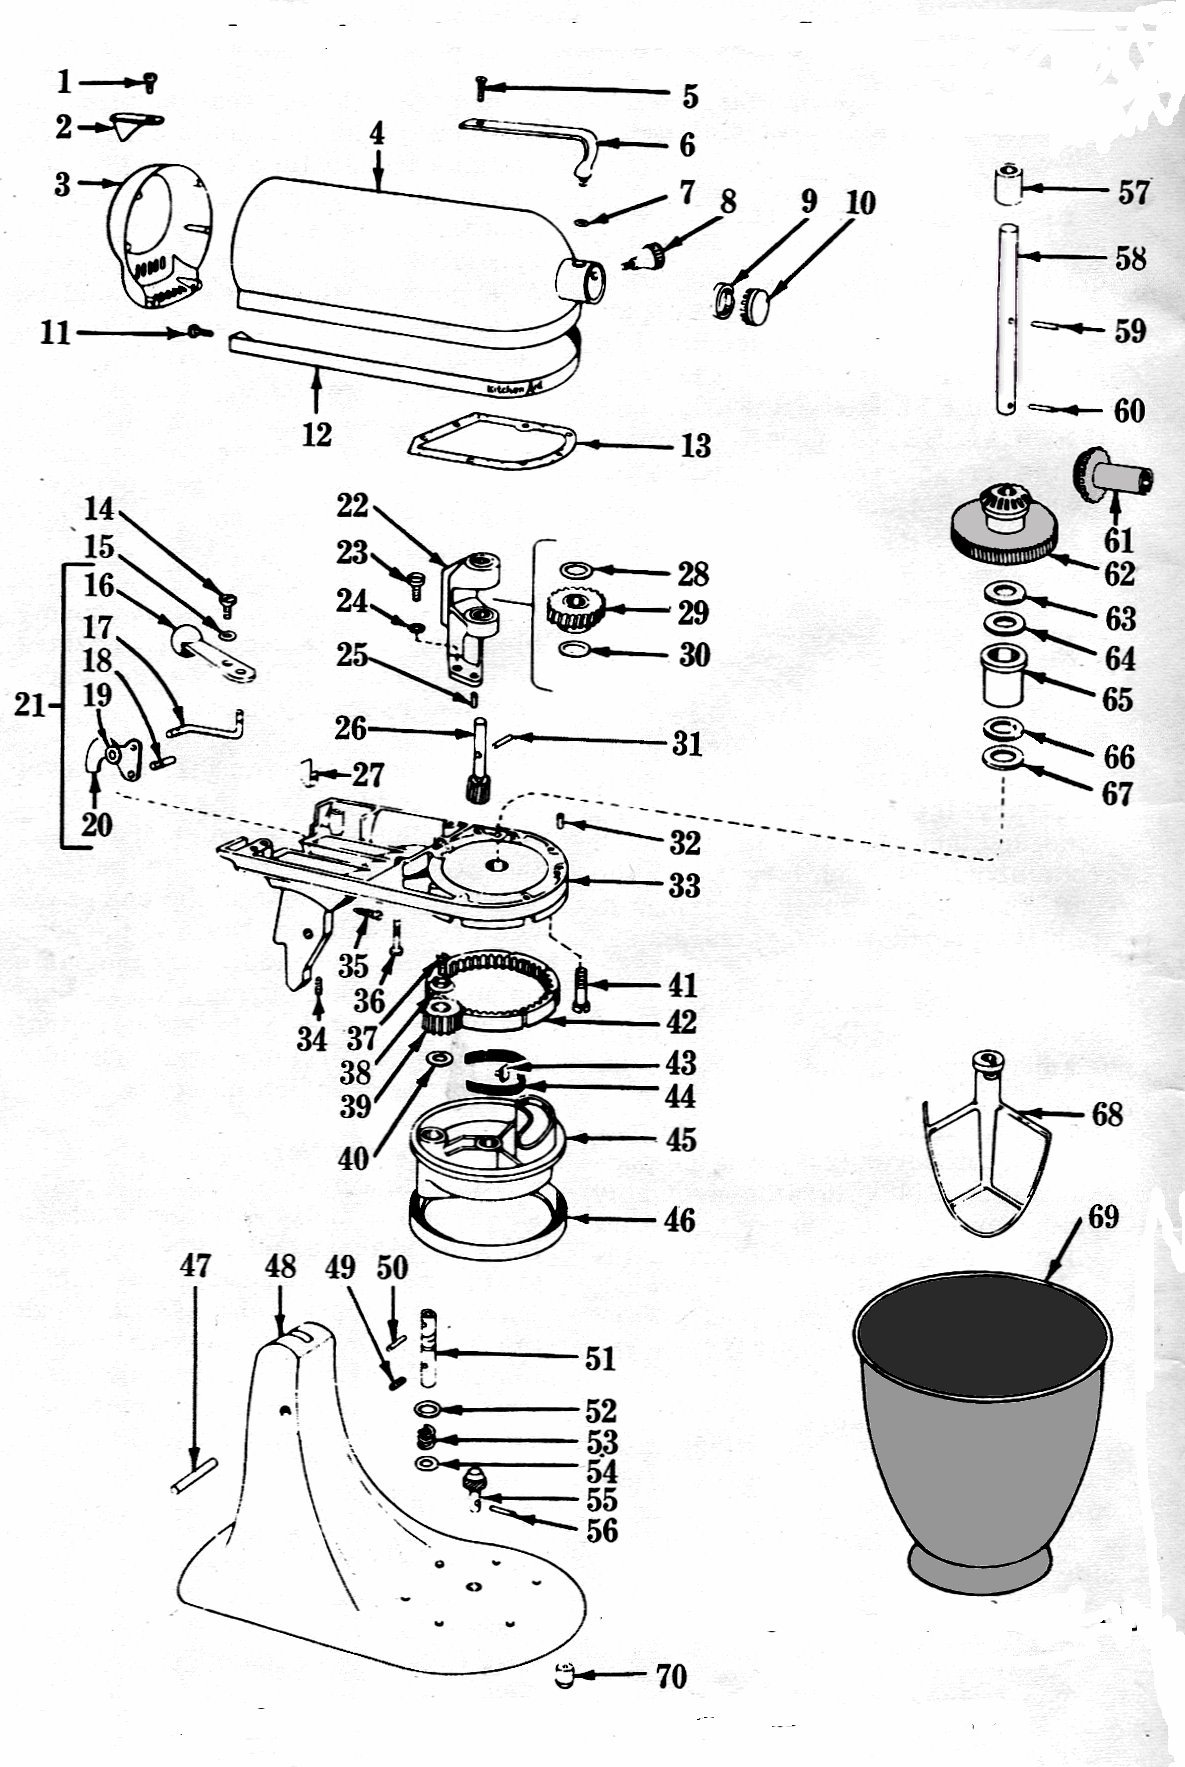 Attractive KitchenAid Food Mixer K4 B Maintenance And Repair Manual: Edited By Irving,  J.F. ATS: Amazon.com: Books